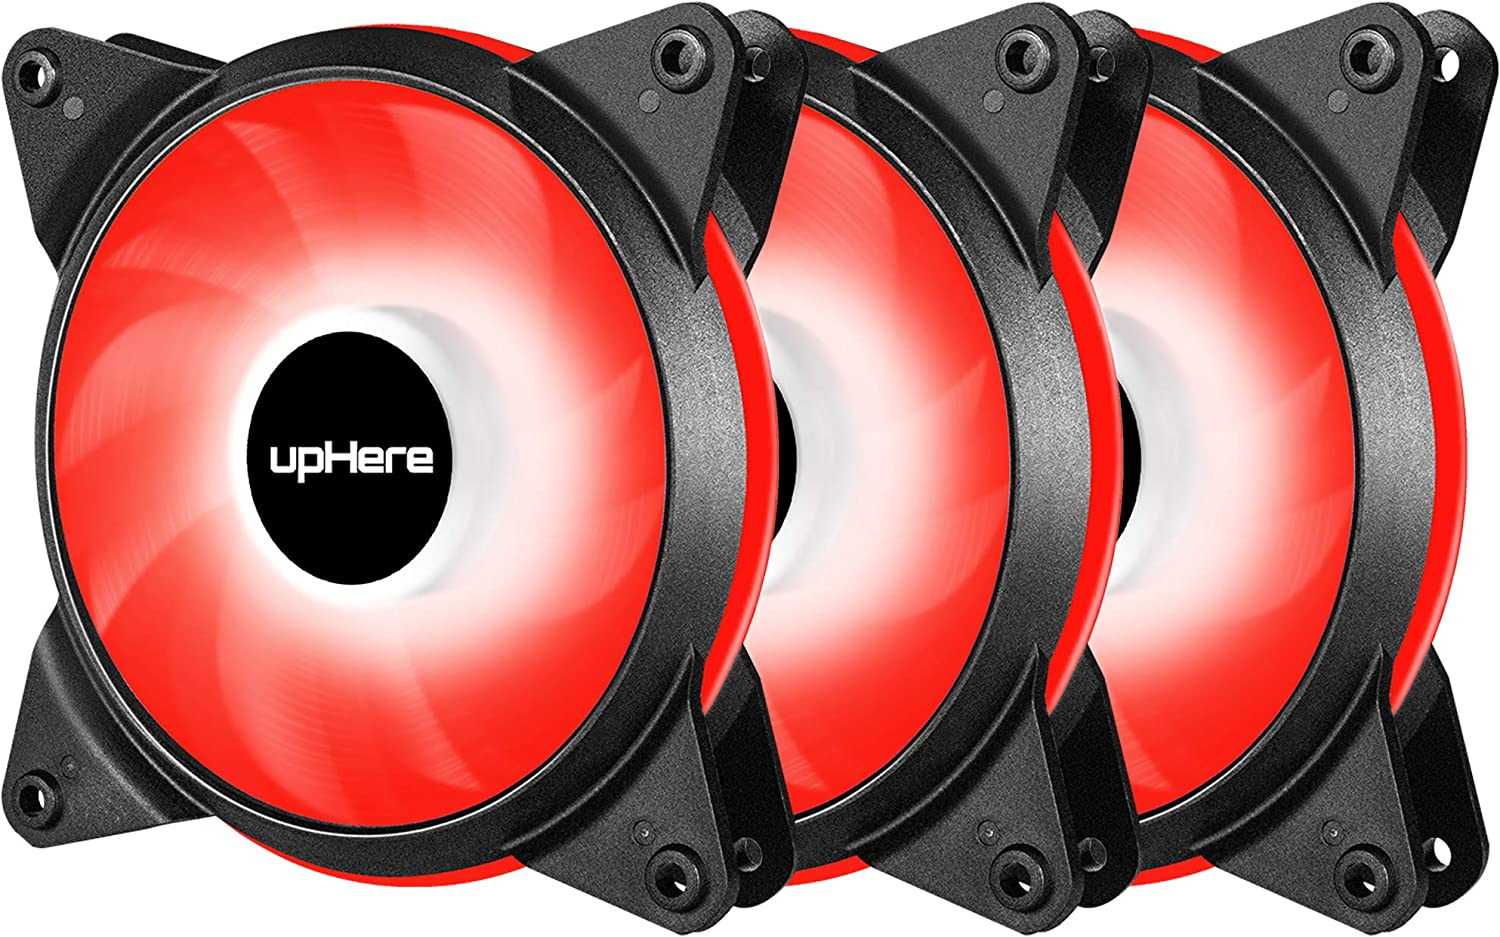 upHere 3-Pack 120mm PWM High Airflow Quiet Edition Red LED Case Fan for PC Cases, CPU Coolers, and Radiators T4RD4-3